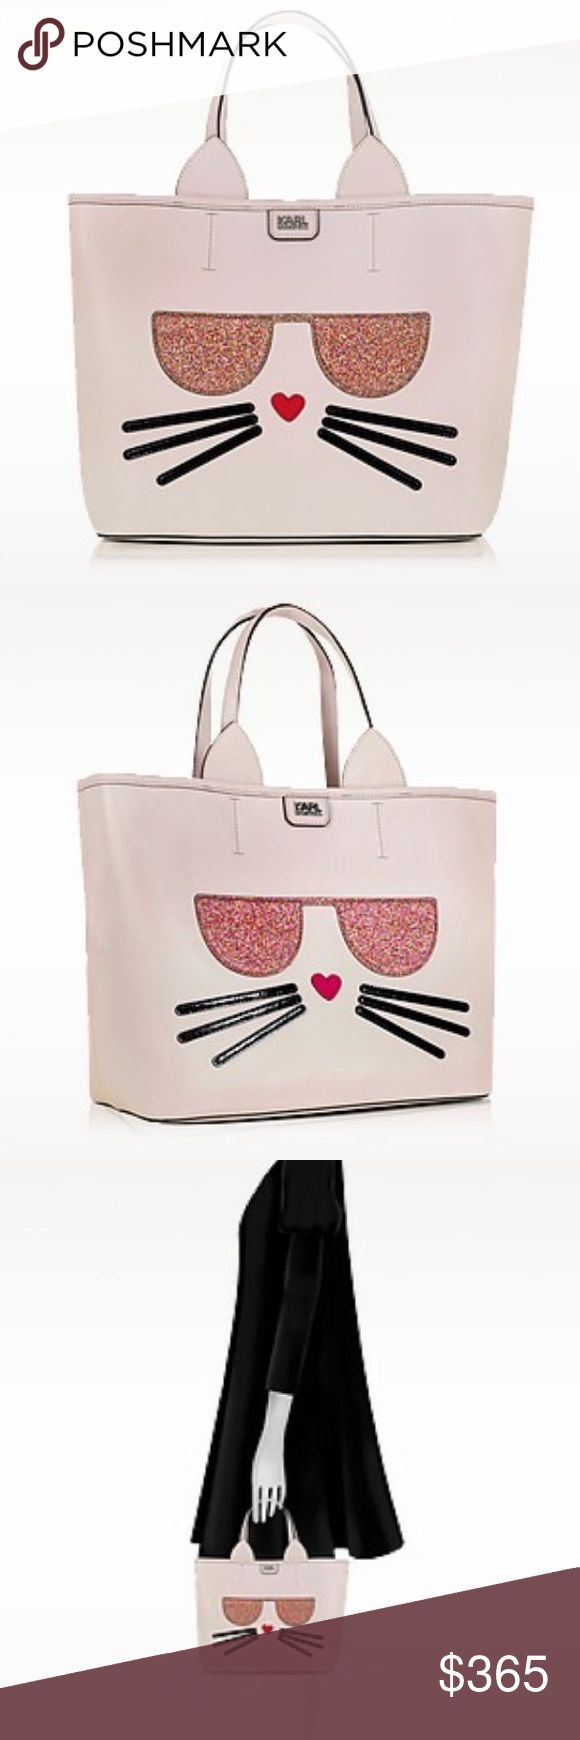 "KARL LAGERFELD K/Kocktail Choupette Shopper K/Kocktail Choupette Shopper w/Glitter crafted in vegan leather with applique detail, lets you join in on the exclusive Kapsule party with this fun take everywhere tote that has ample room for a bottle of bubbles. Featuring top zip closure, double flat handles, Choupette with glitter glasses applique, detachable inner zip pouch and silver tone hardware detail. Signature dust bag included Width	12.60"" Height	11.42""  Depth	6.69""  Handles	Double…"